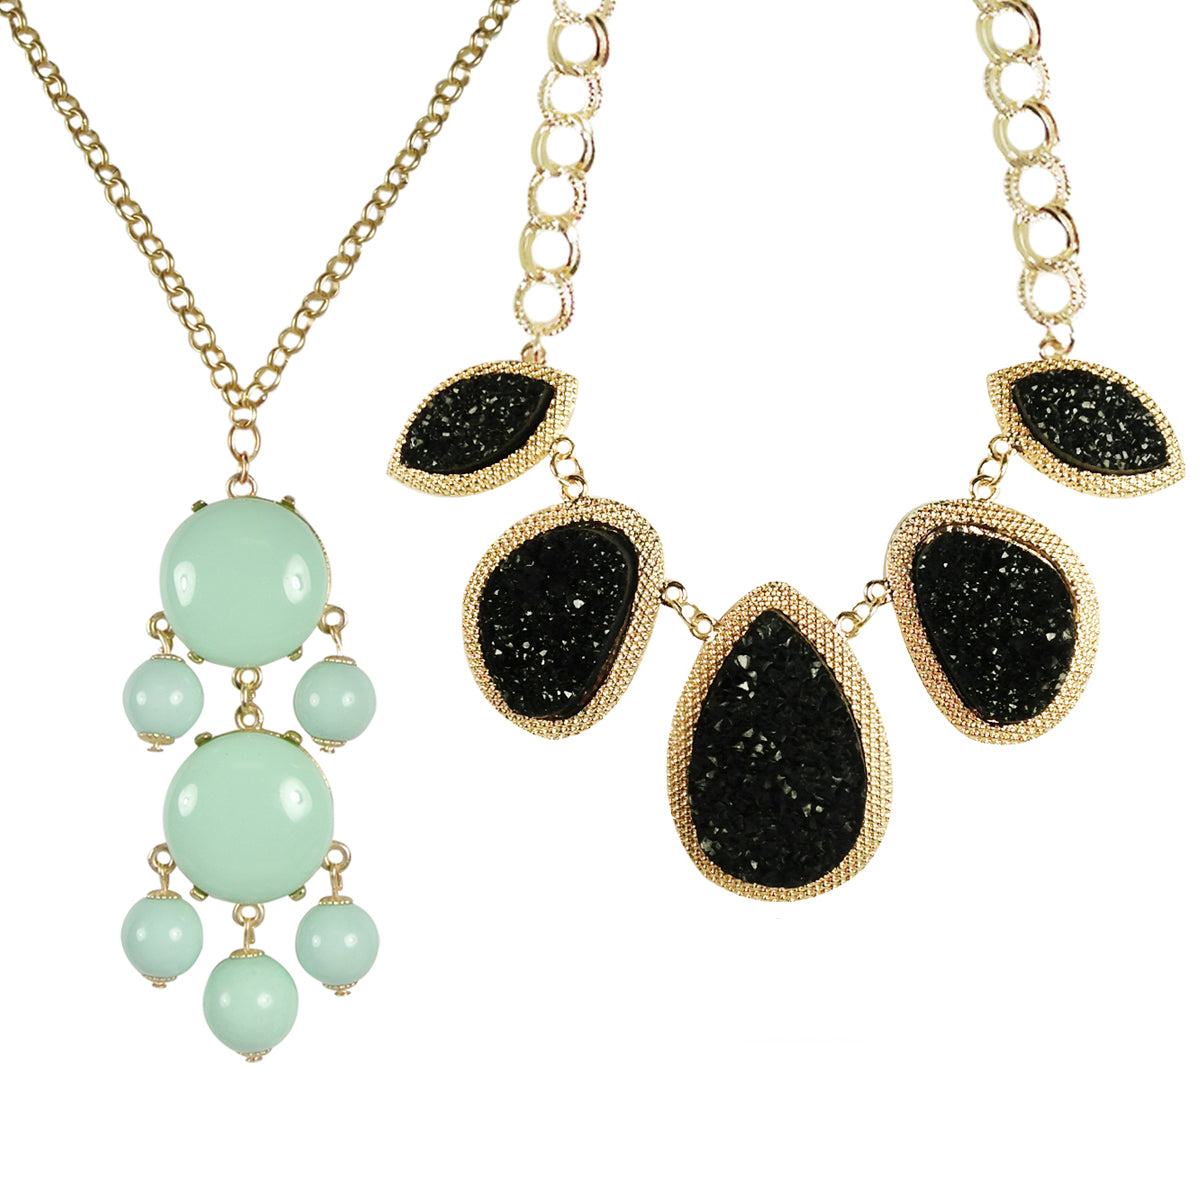 Mint Green Beaded Bubble Pendant Necklace + Black Drop Stone Necklace [A63876, A64559]